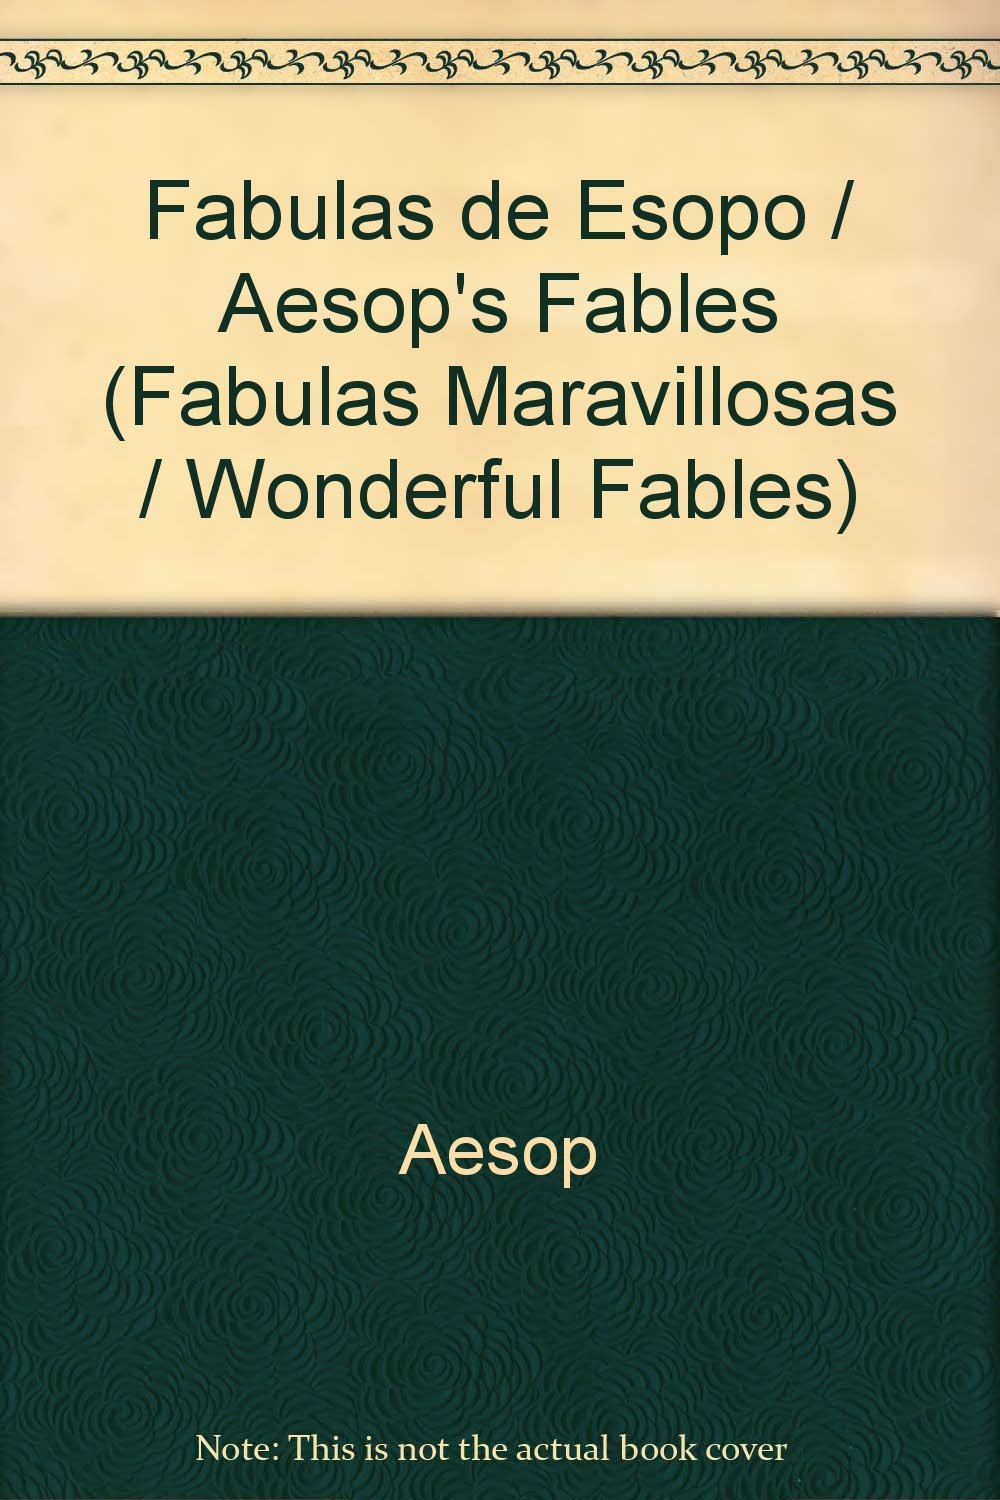 Fabulas de Esopo/Aesop's Fables (Fabulas maravillosas/Wonderful Fables, Band 2)